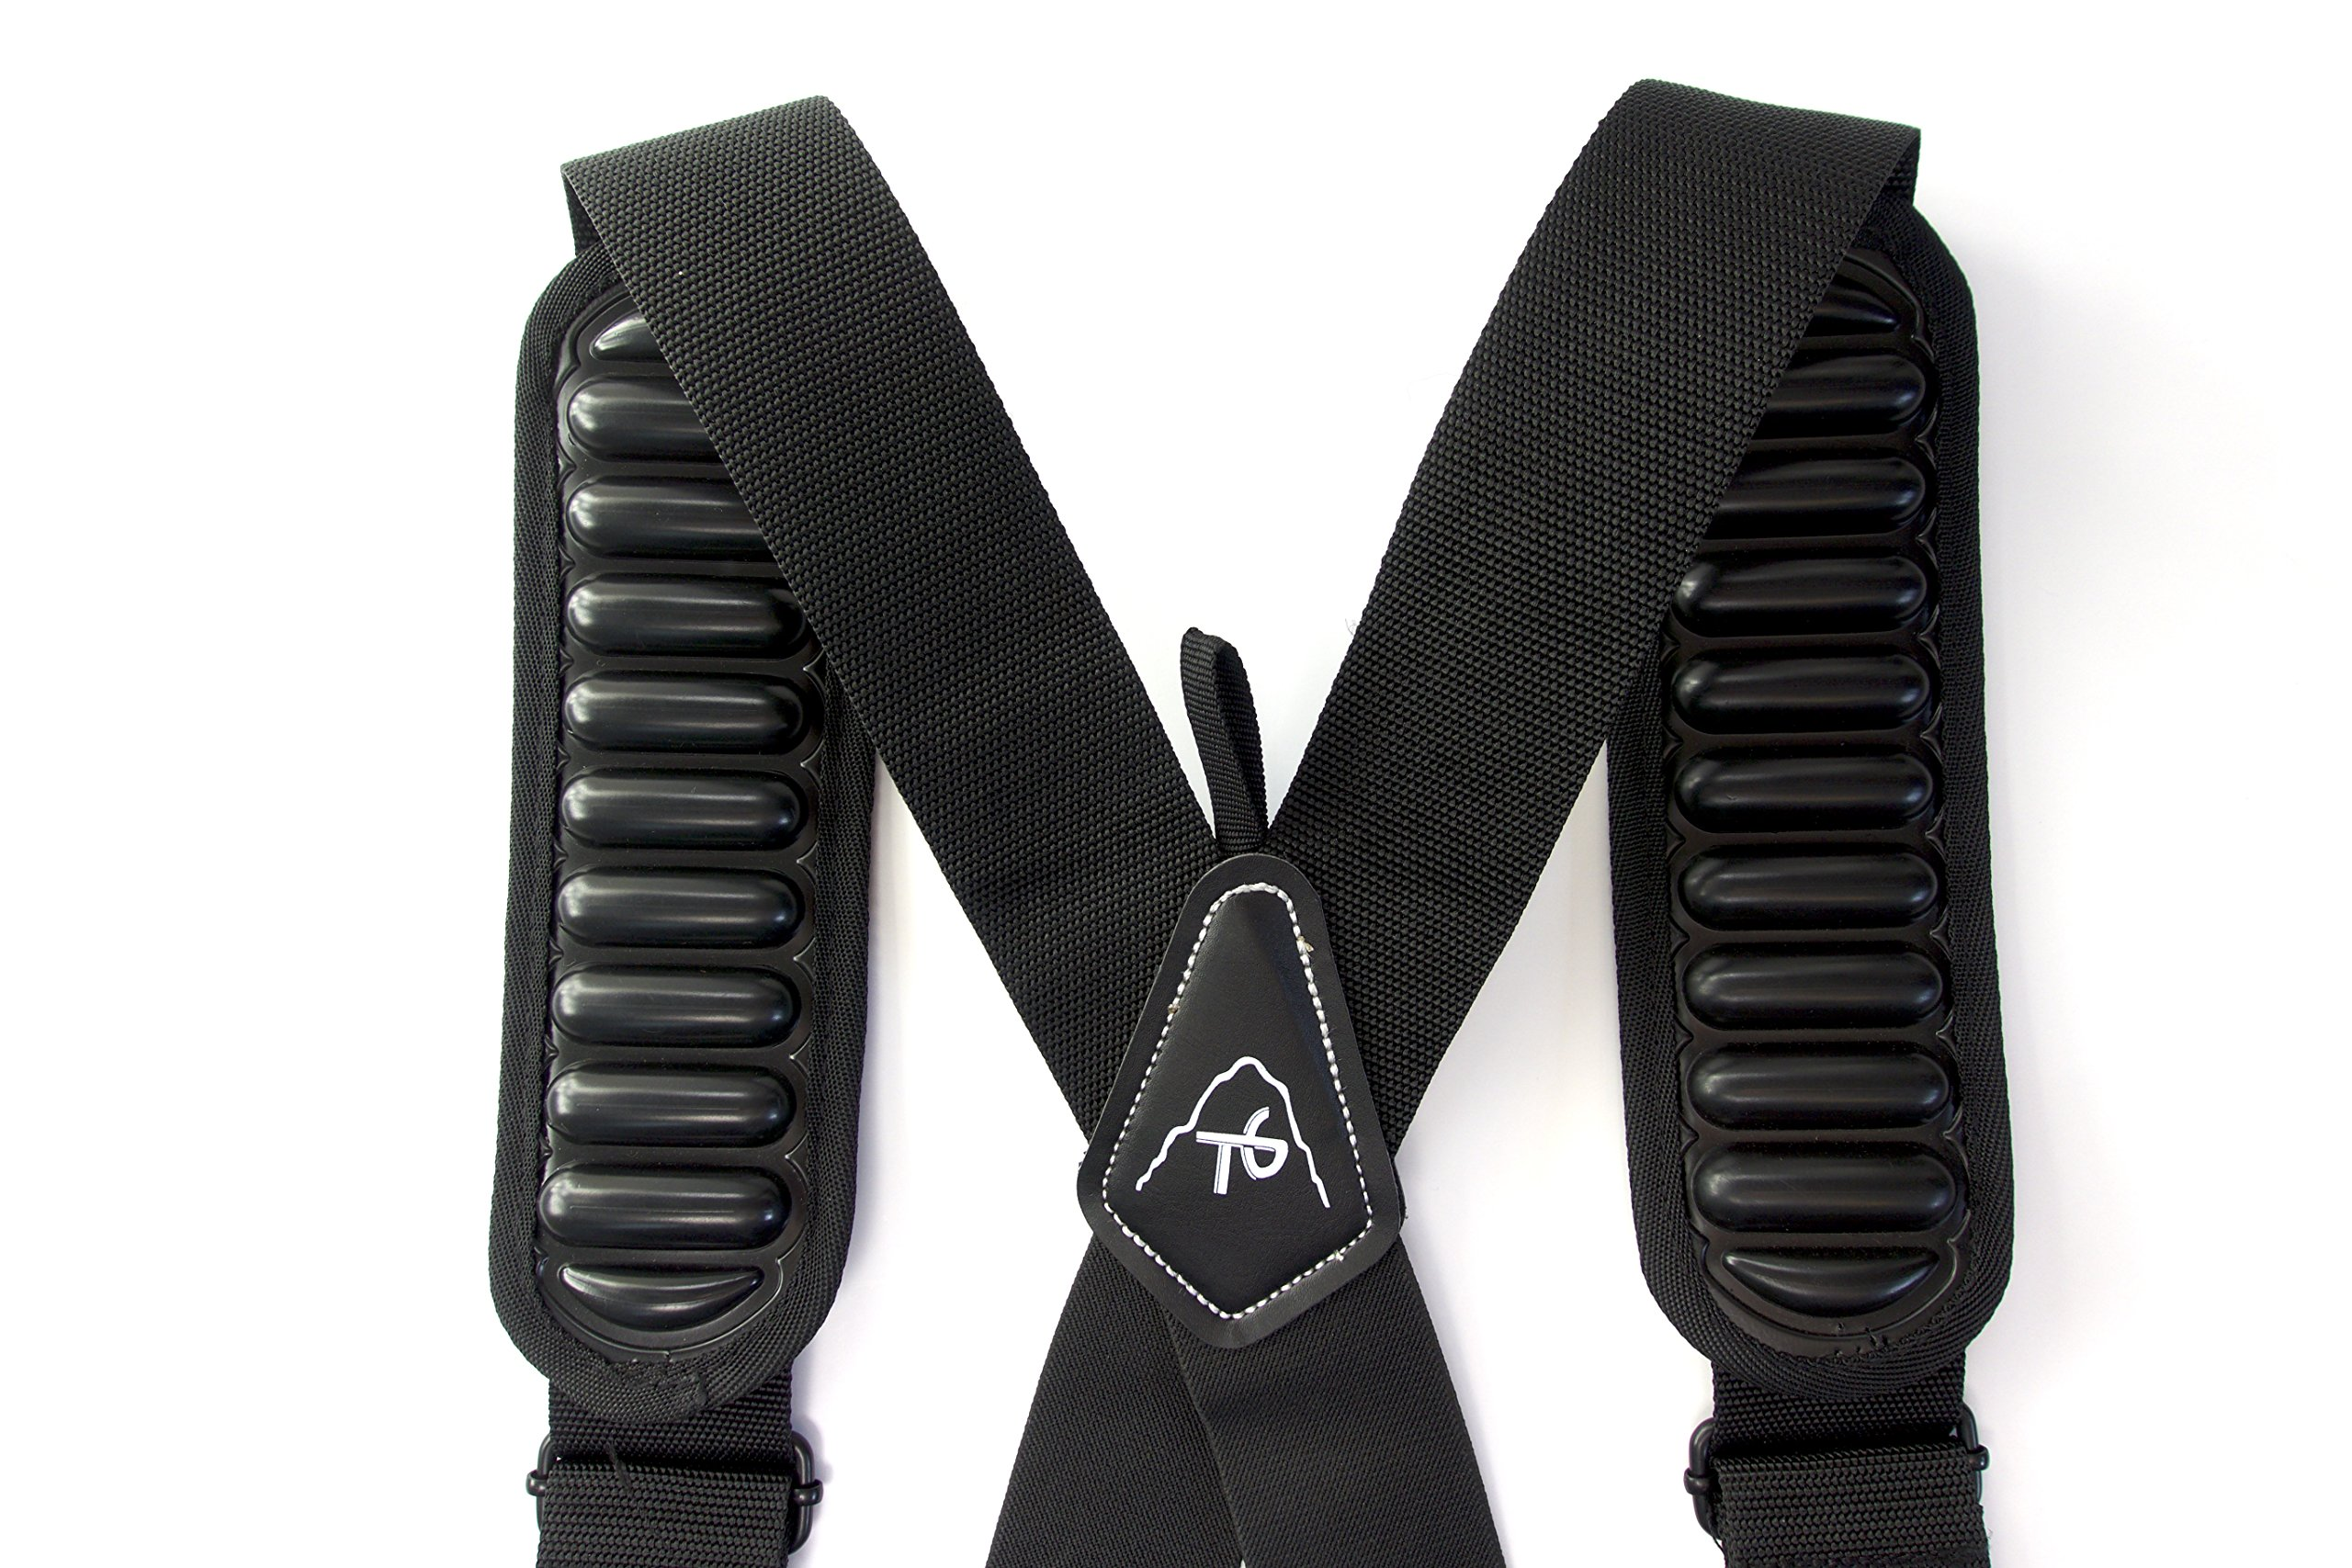 Tool Belt Suspenders- Heavy Duty Work Suspenders for Men, Adjustable, Comfortable and Padded -Includes- Tool Belt Loops and Strong Trigger Snap Clips by ToolsGold by ToolsGold (Image #9)